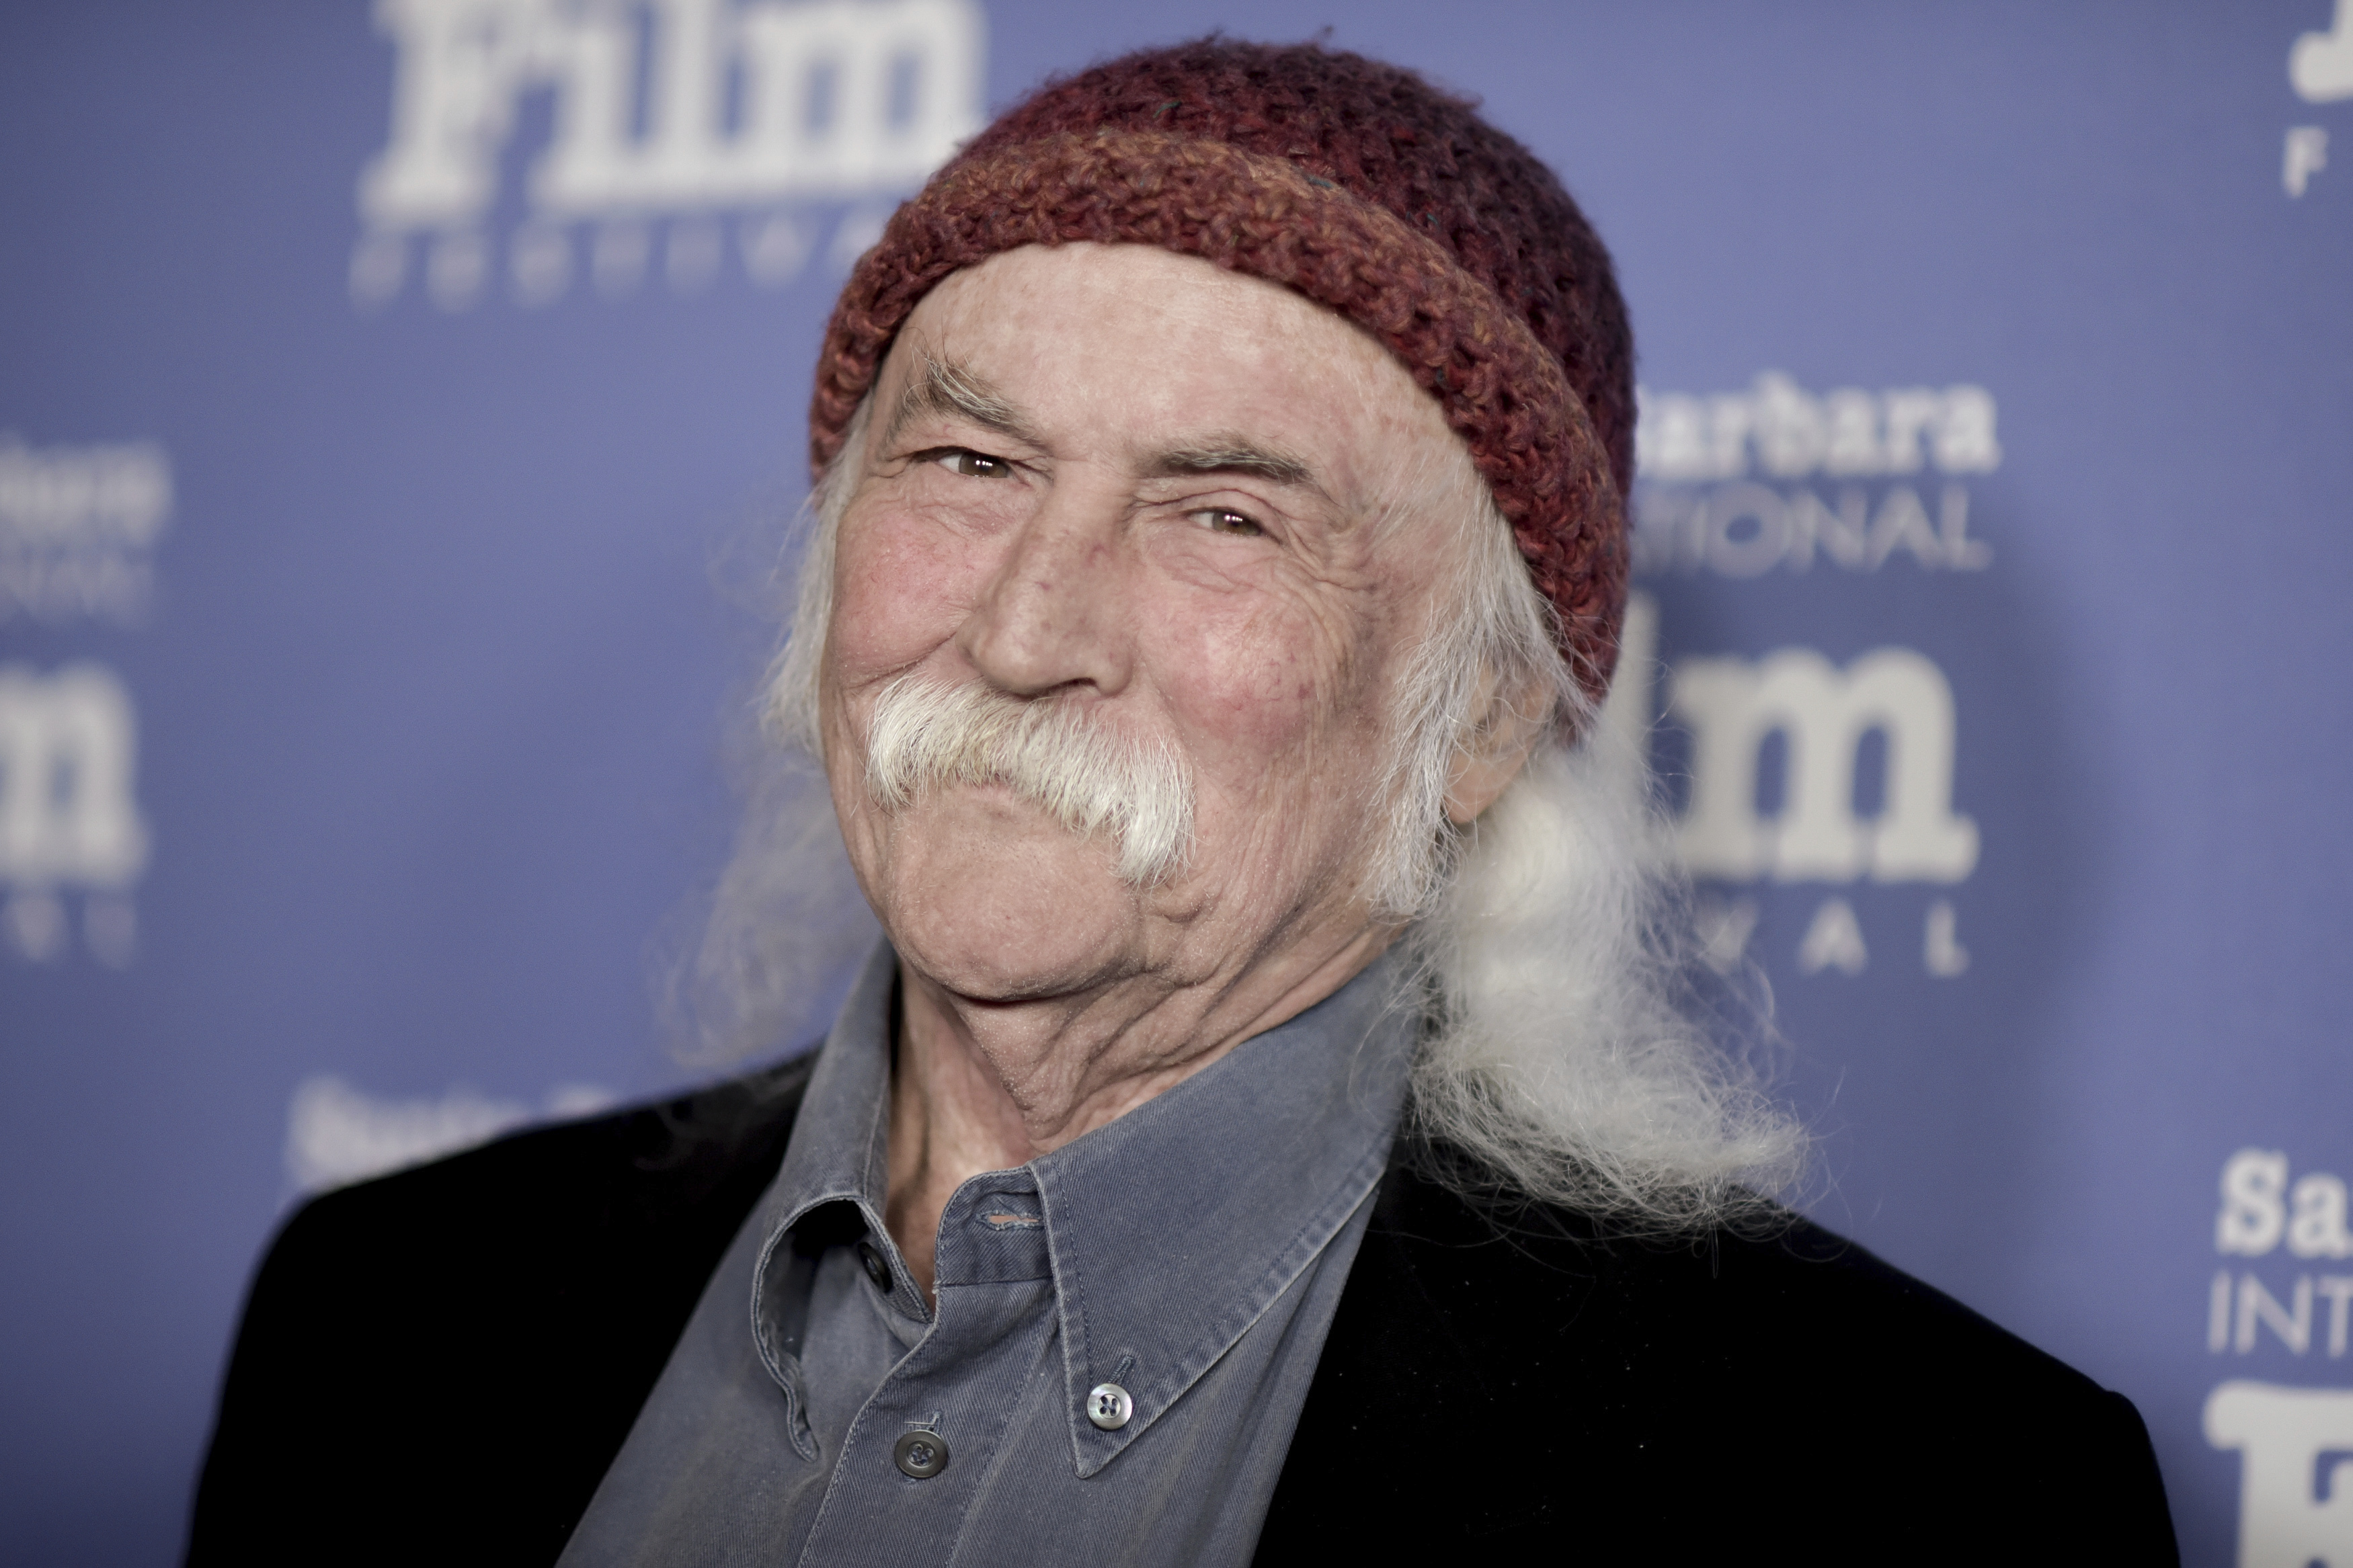 You get to see the whole guy, warts and all': David Crosby's